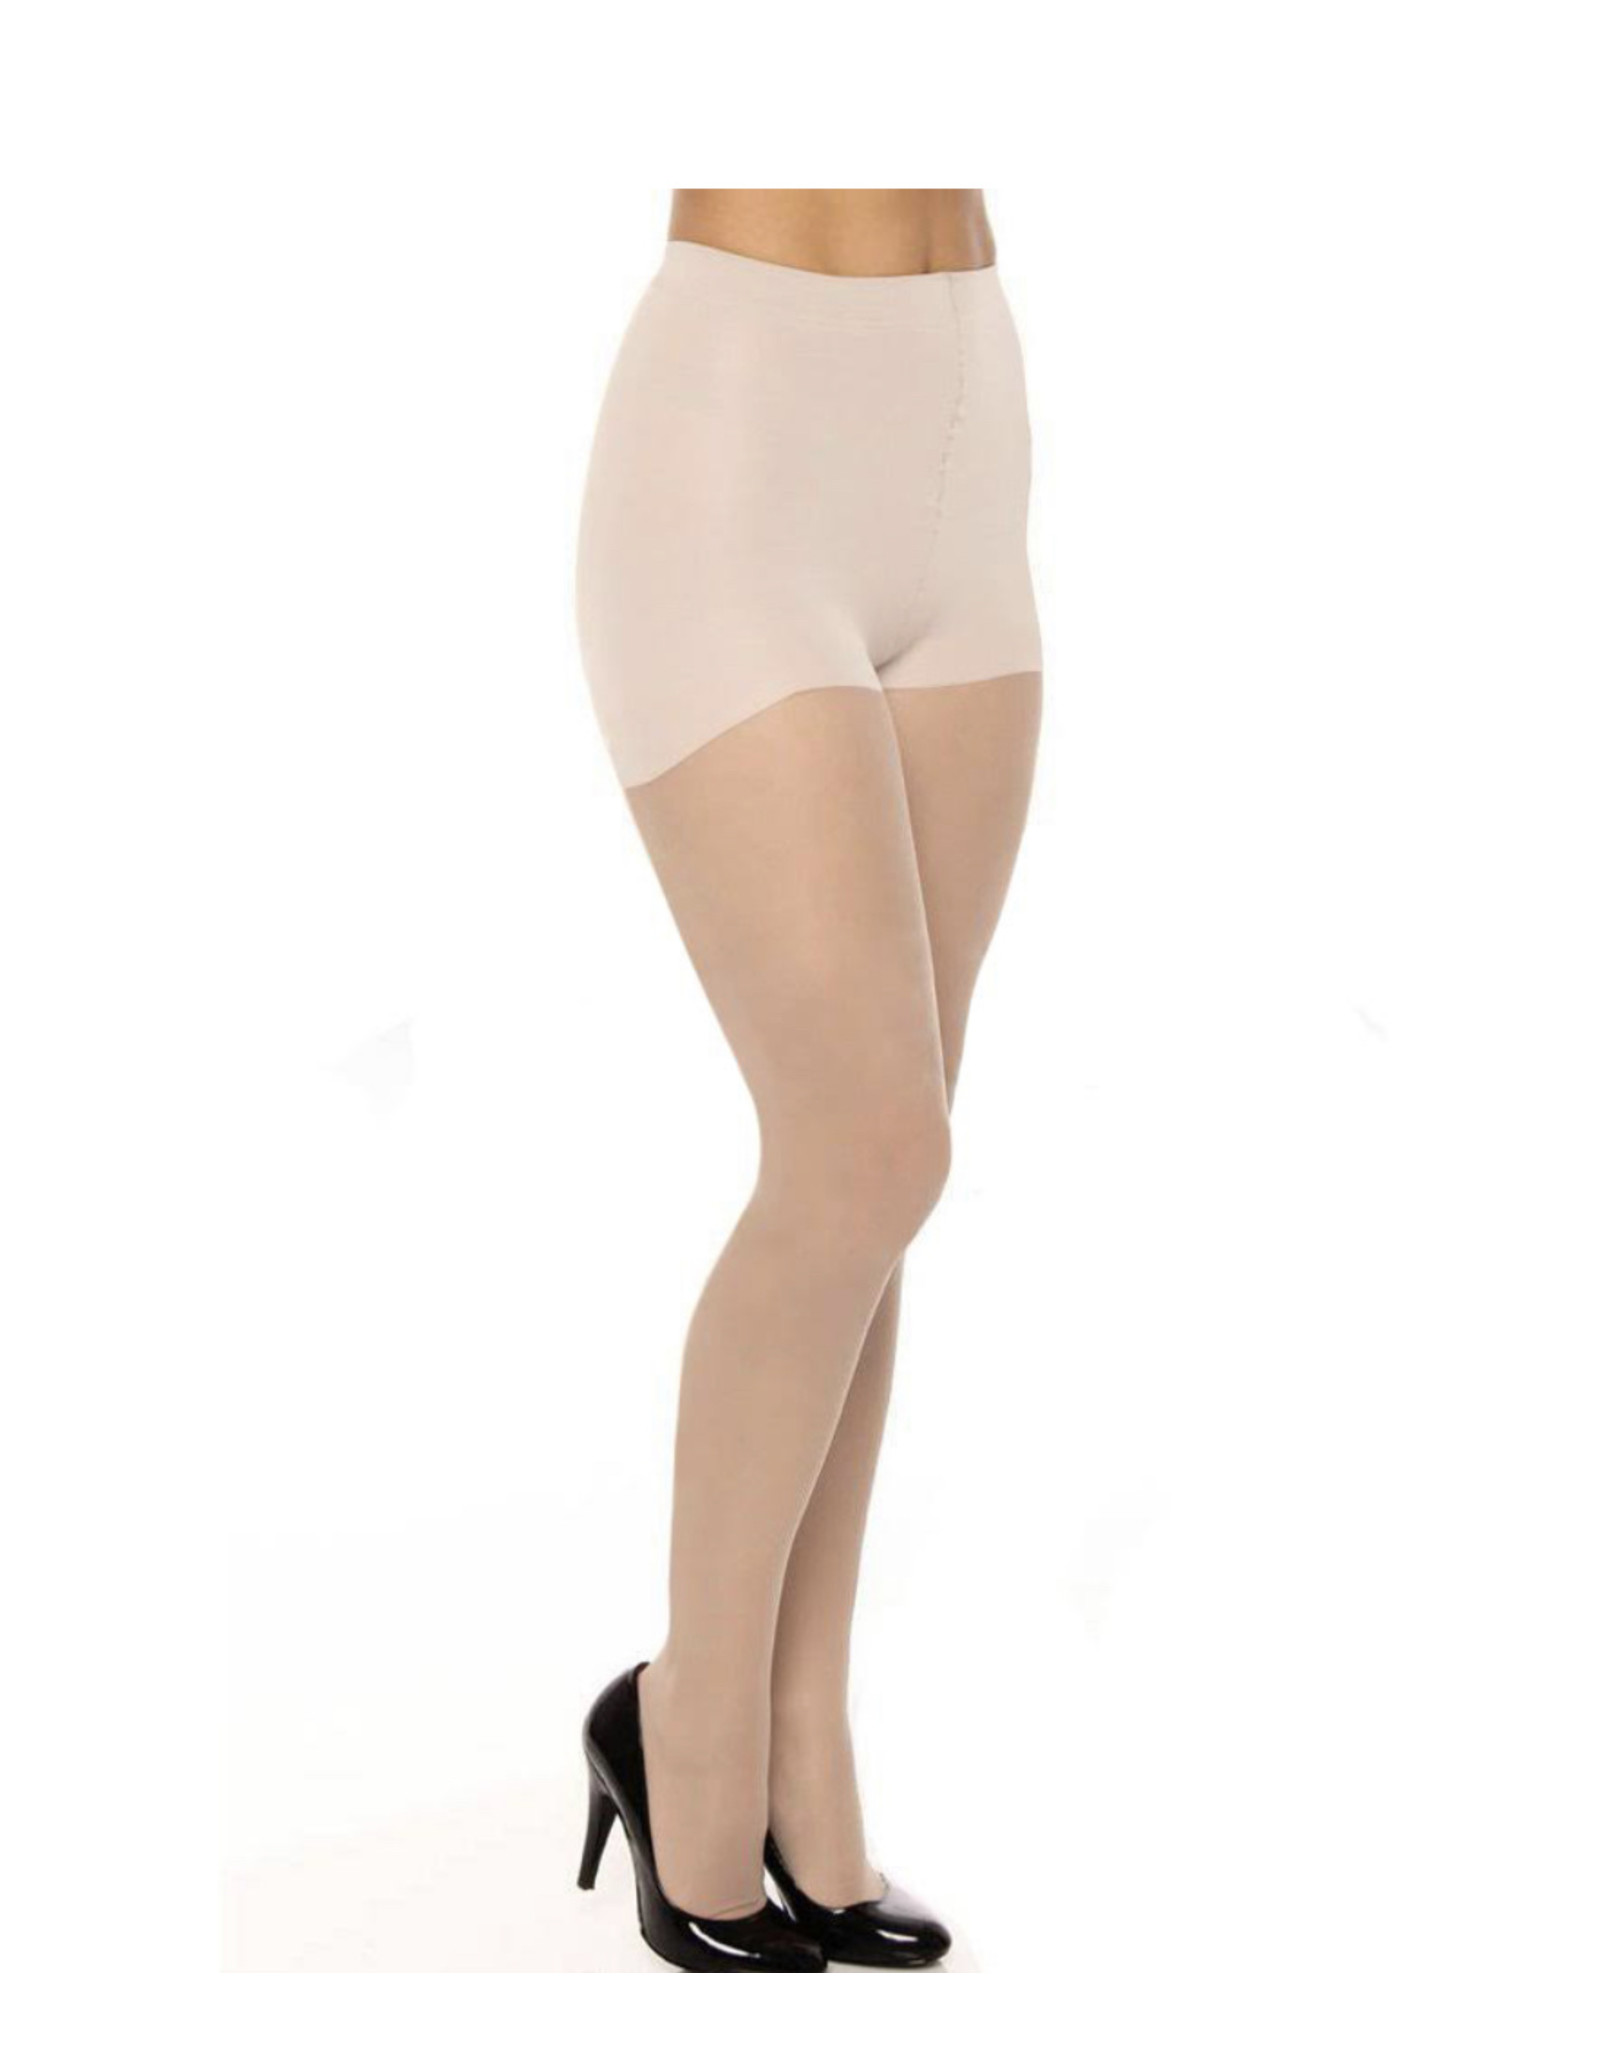 Berkshire Berkshire Silky Sheer Light Support Graduated Compression Leg Pantyhose with Reinforced Toe - 8101